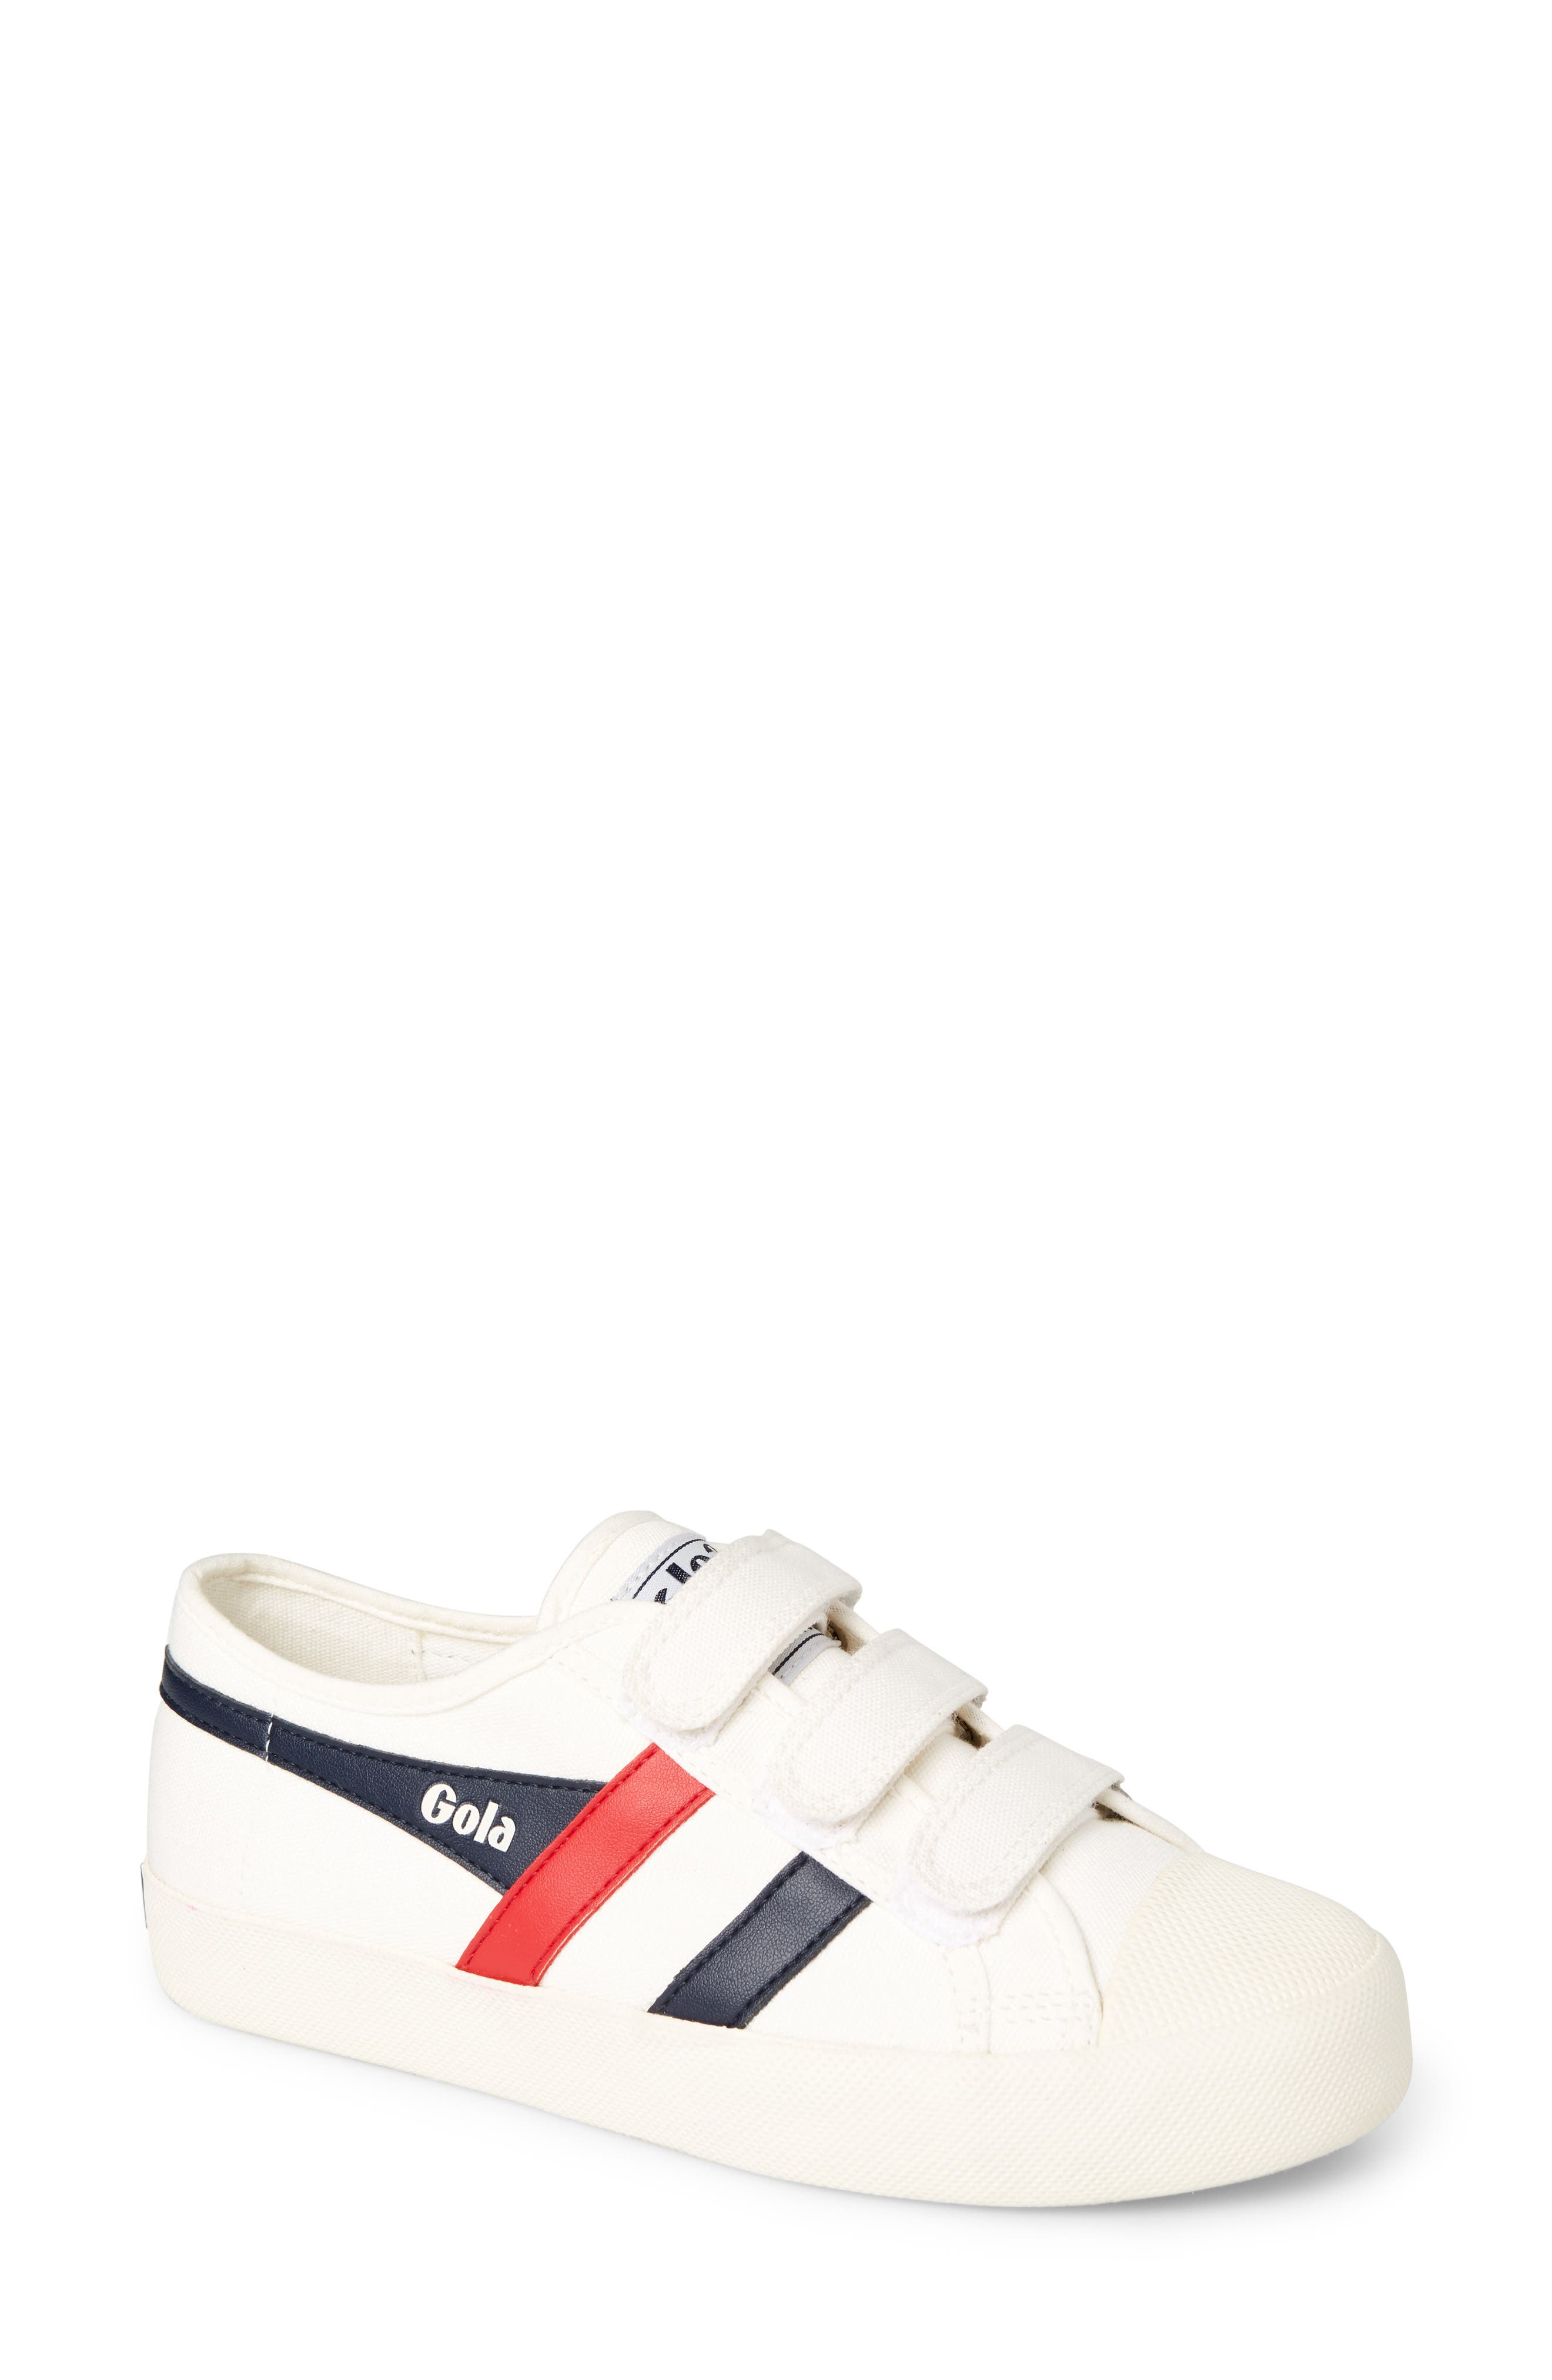 Coaster Low Top Sneaker,                         Main,                         color, OFF WHITE/ NAVY/ RED